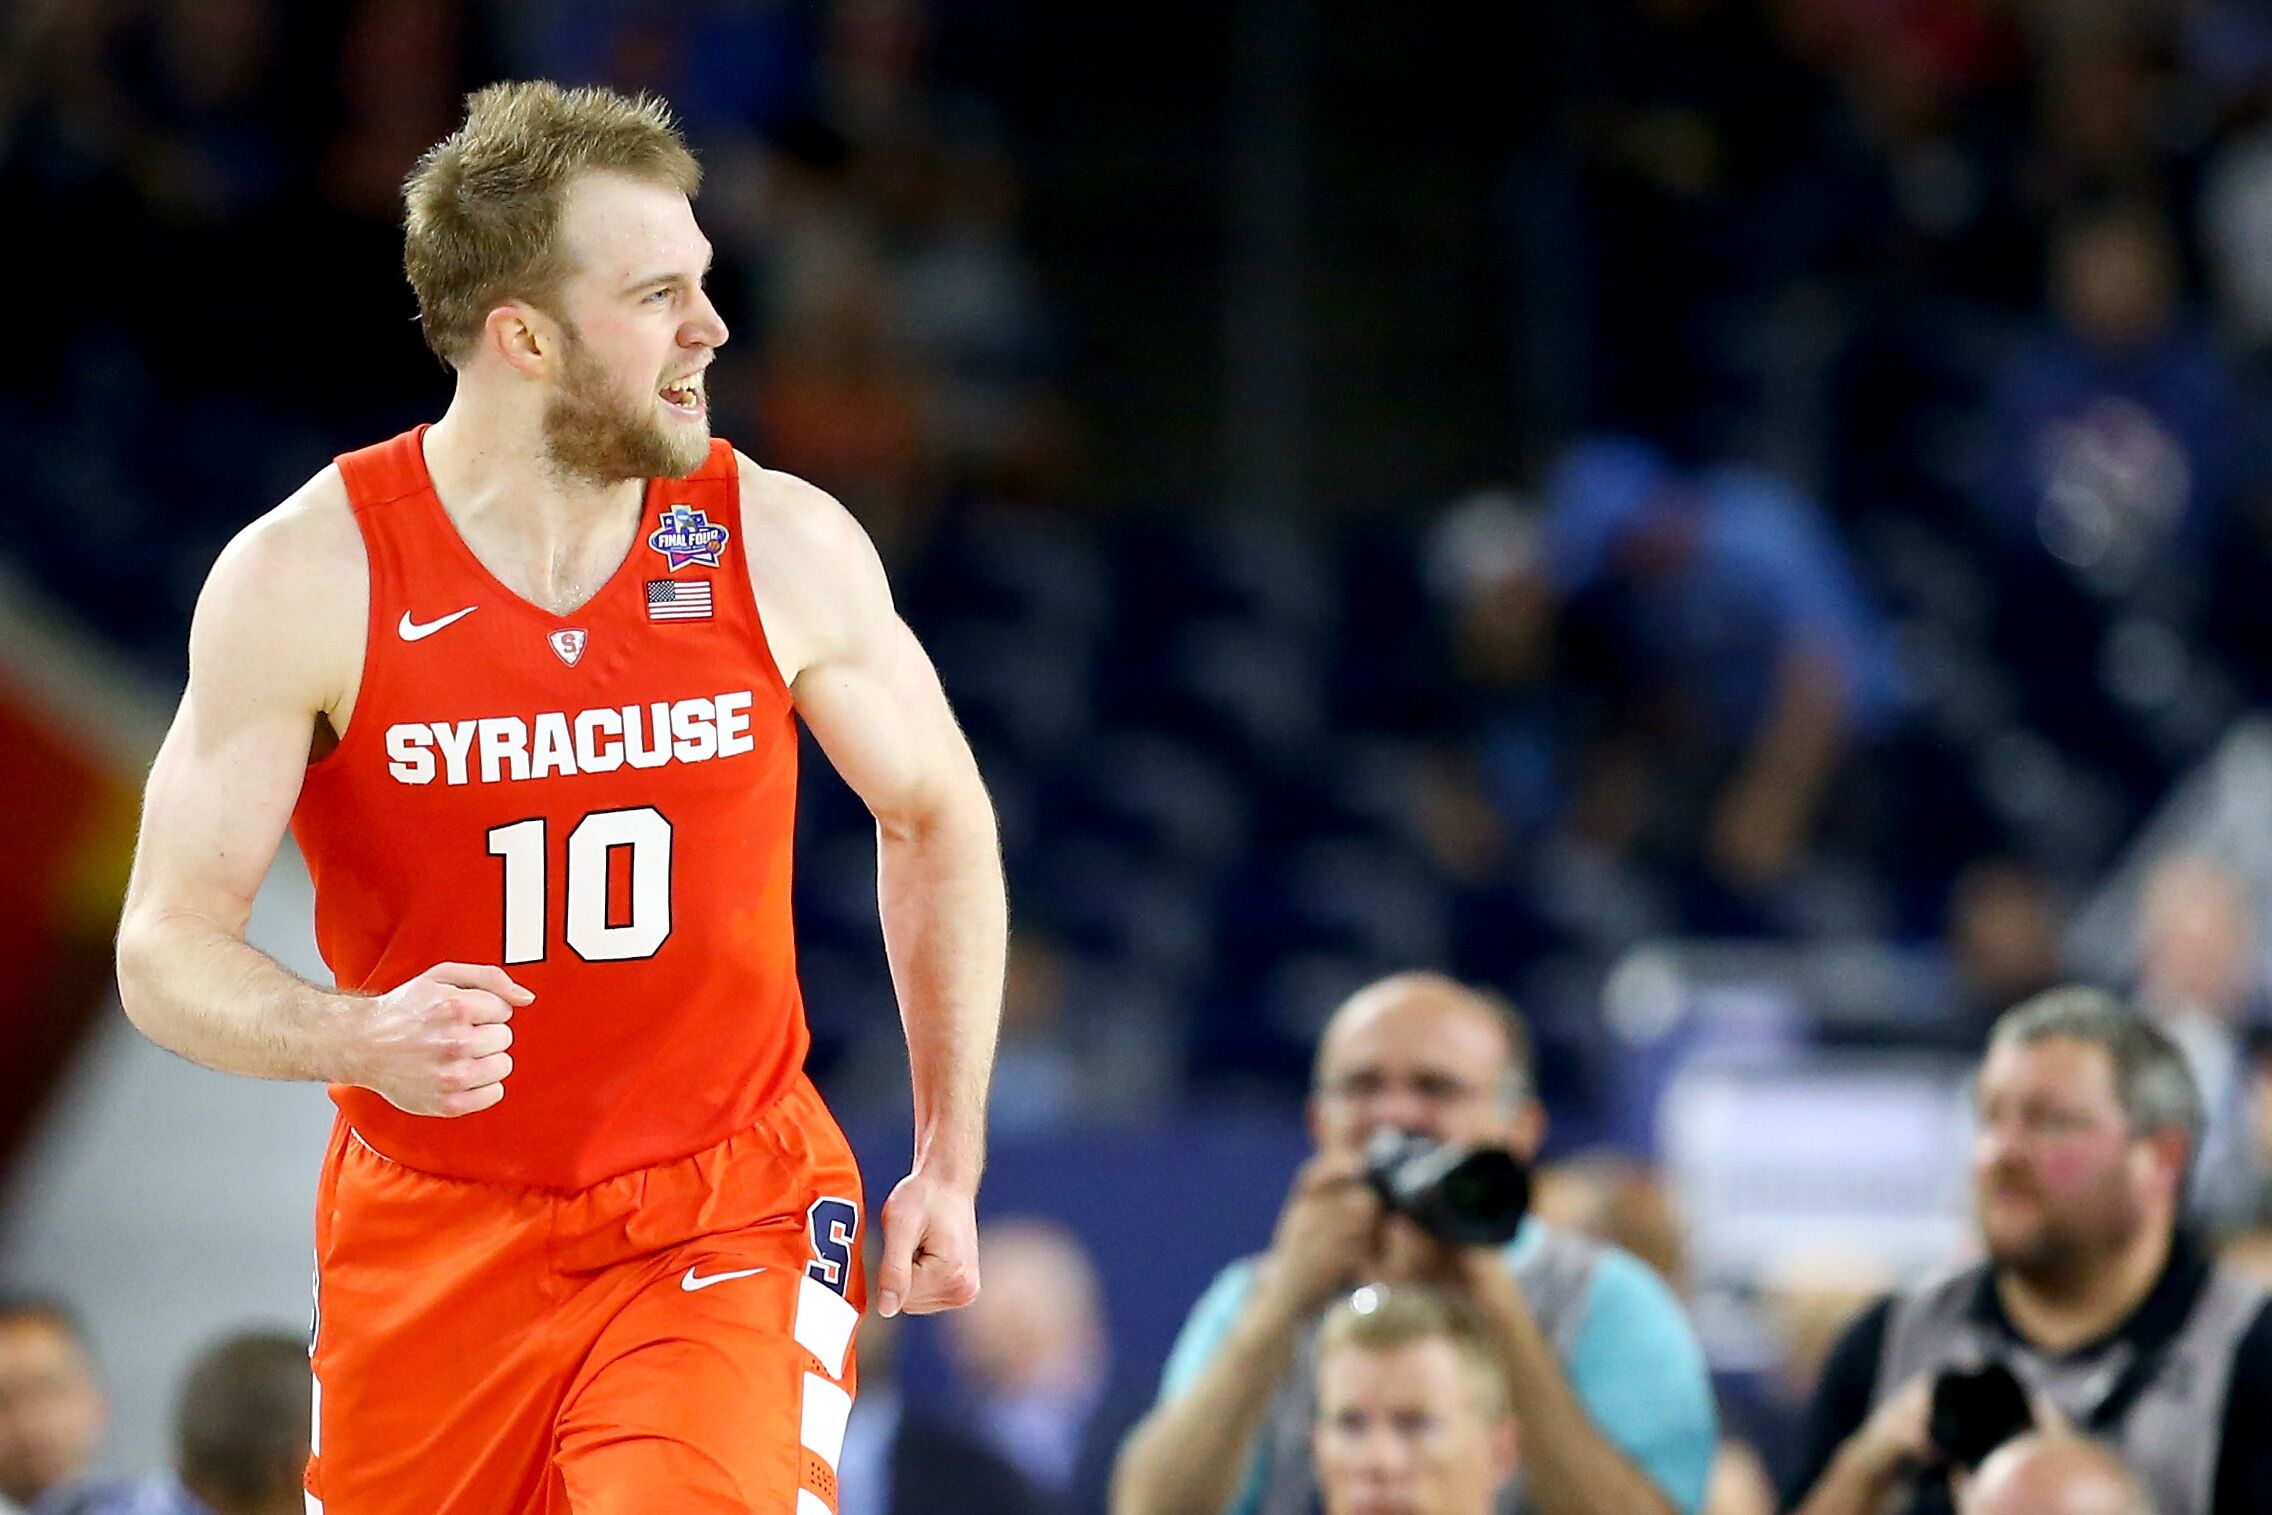 Syracuse Basketball Top 10 3 Point Shooters In Orange History